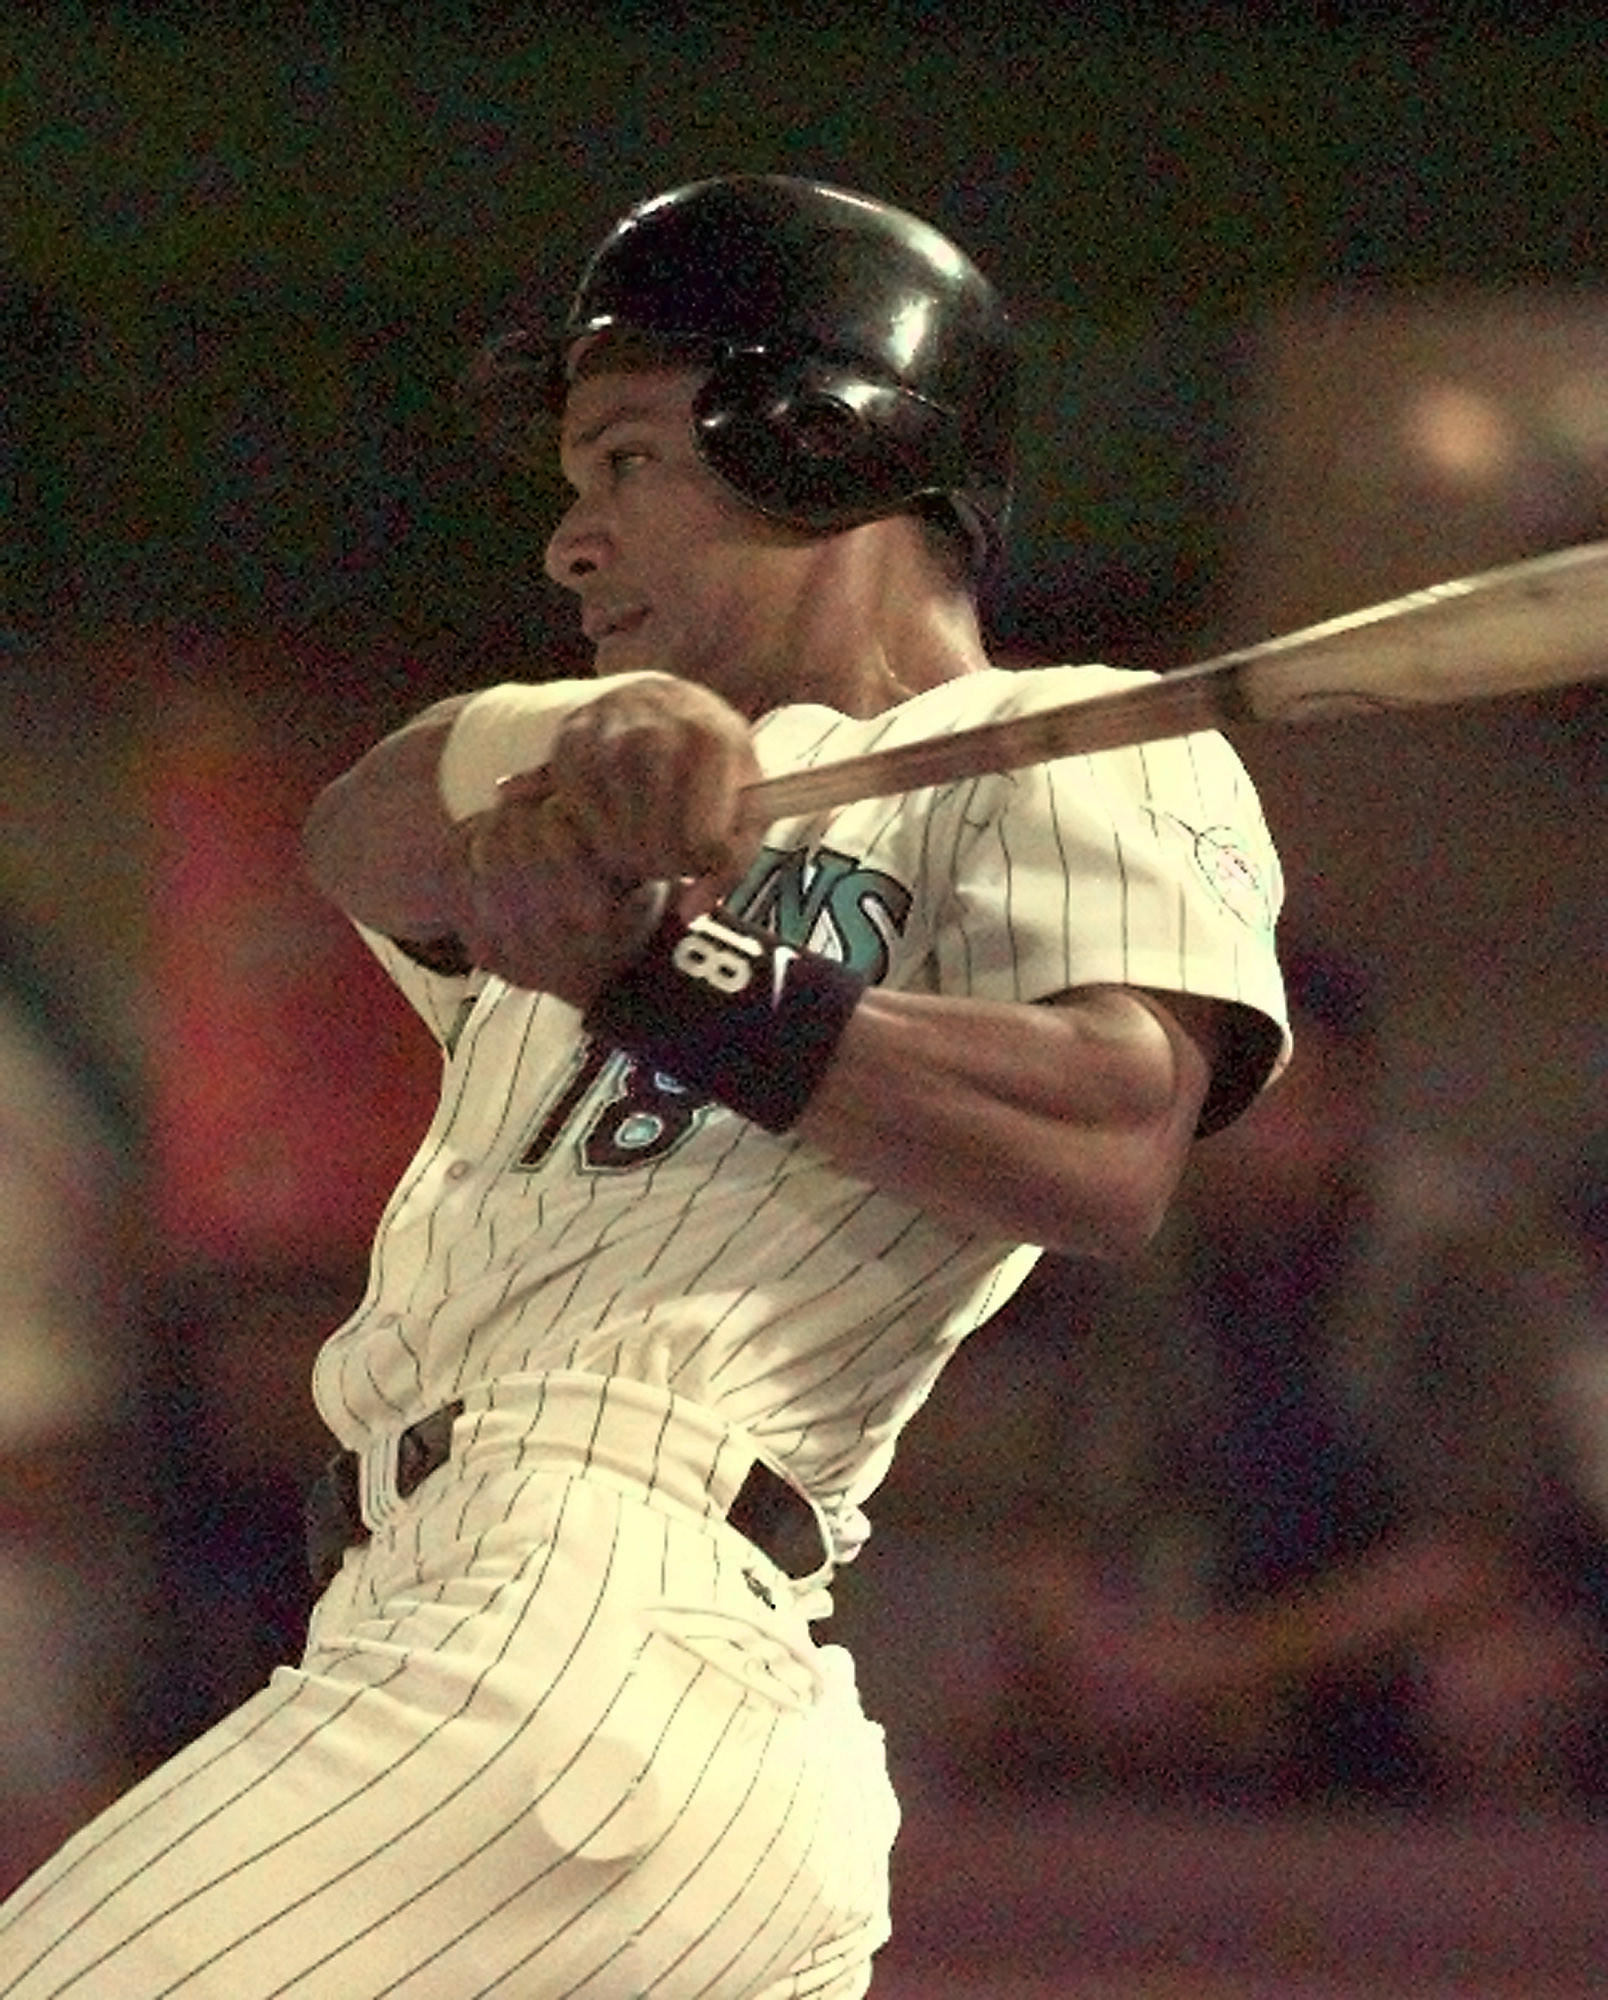 Moises Alou is among the former Marlins on the 2014 Hall of Fame ballot. He isn't likely to receive the 5 percent of the vote needed to remain.